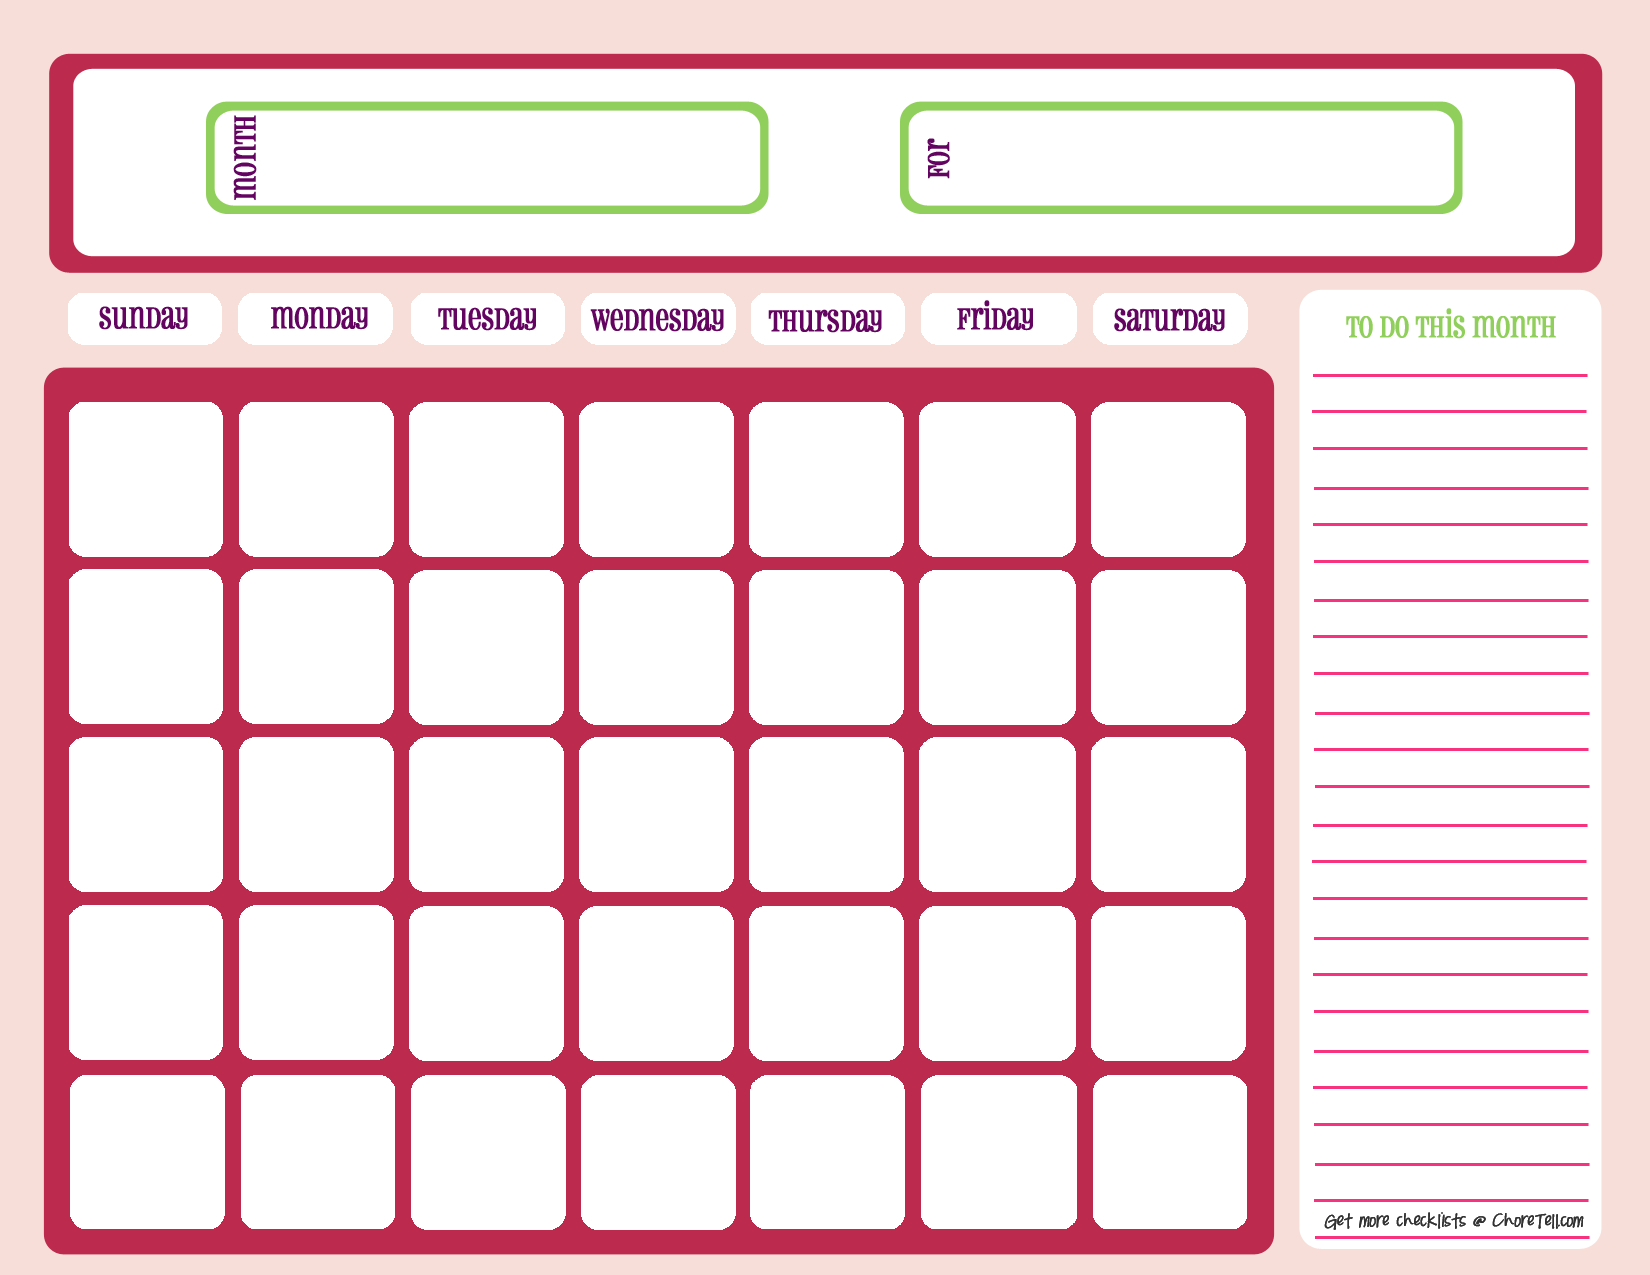 Blank Month Calendar - Pinks - Free Printable Downloads From - Free Printable To Do Charts